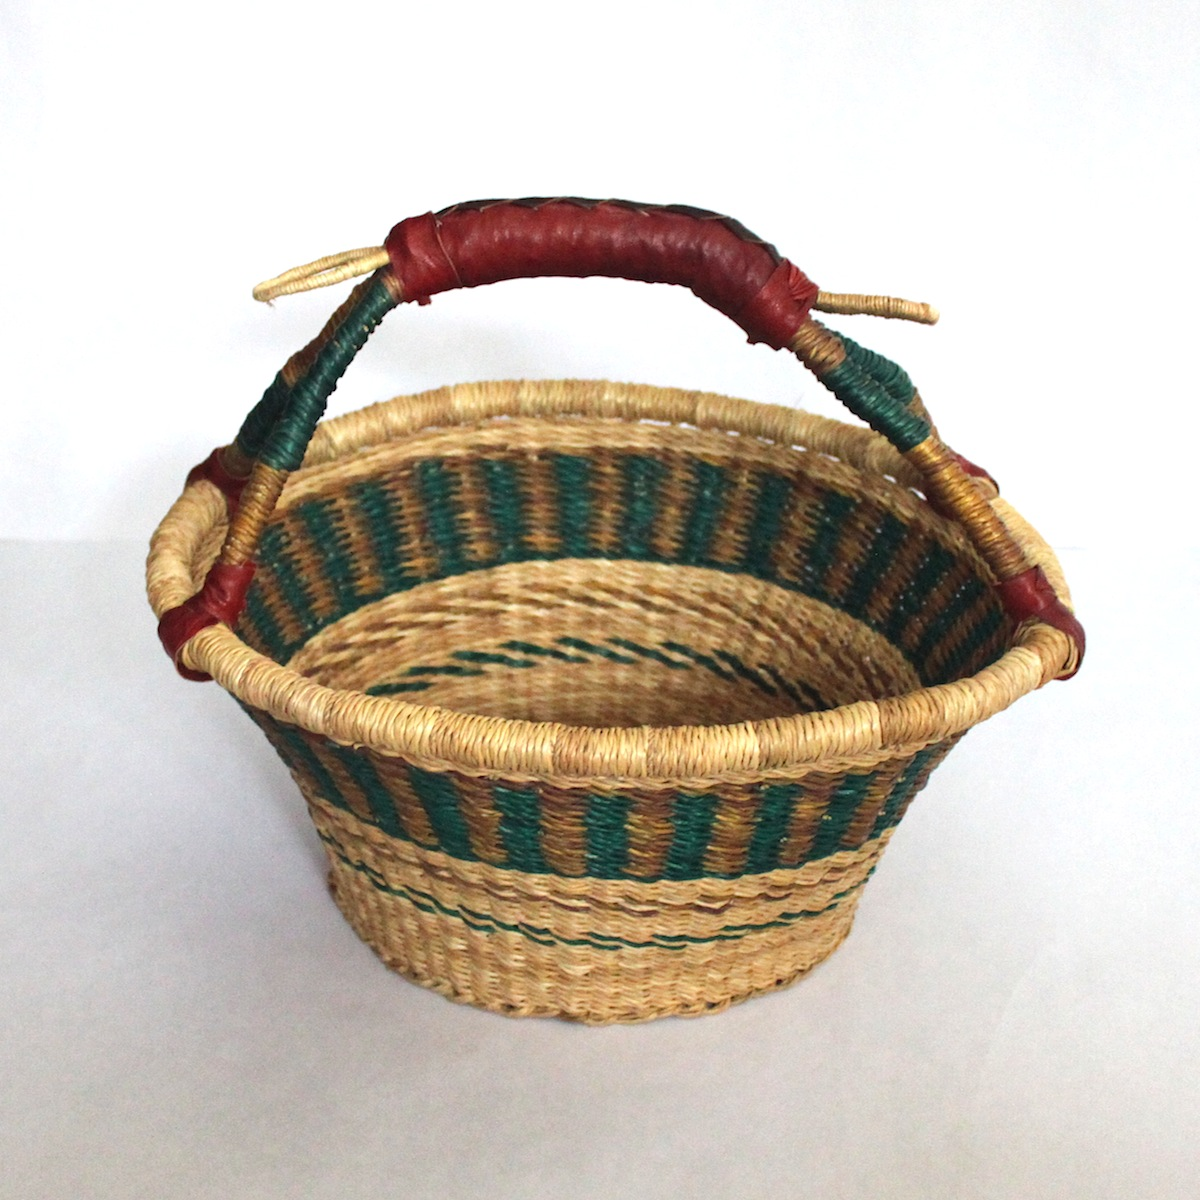 2. Dry fruits and nuts baskets